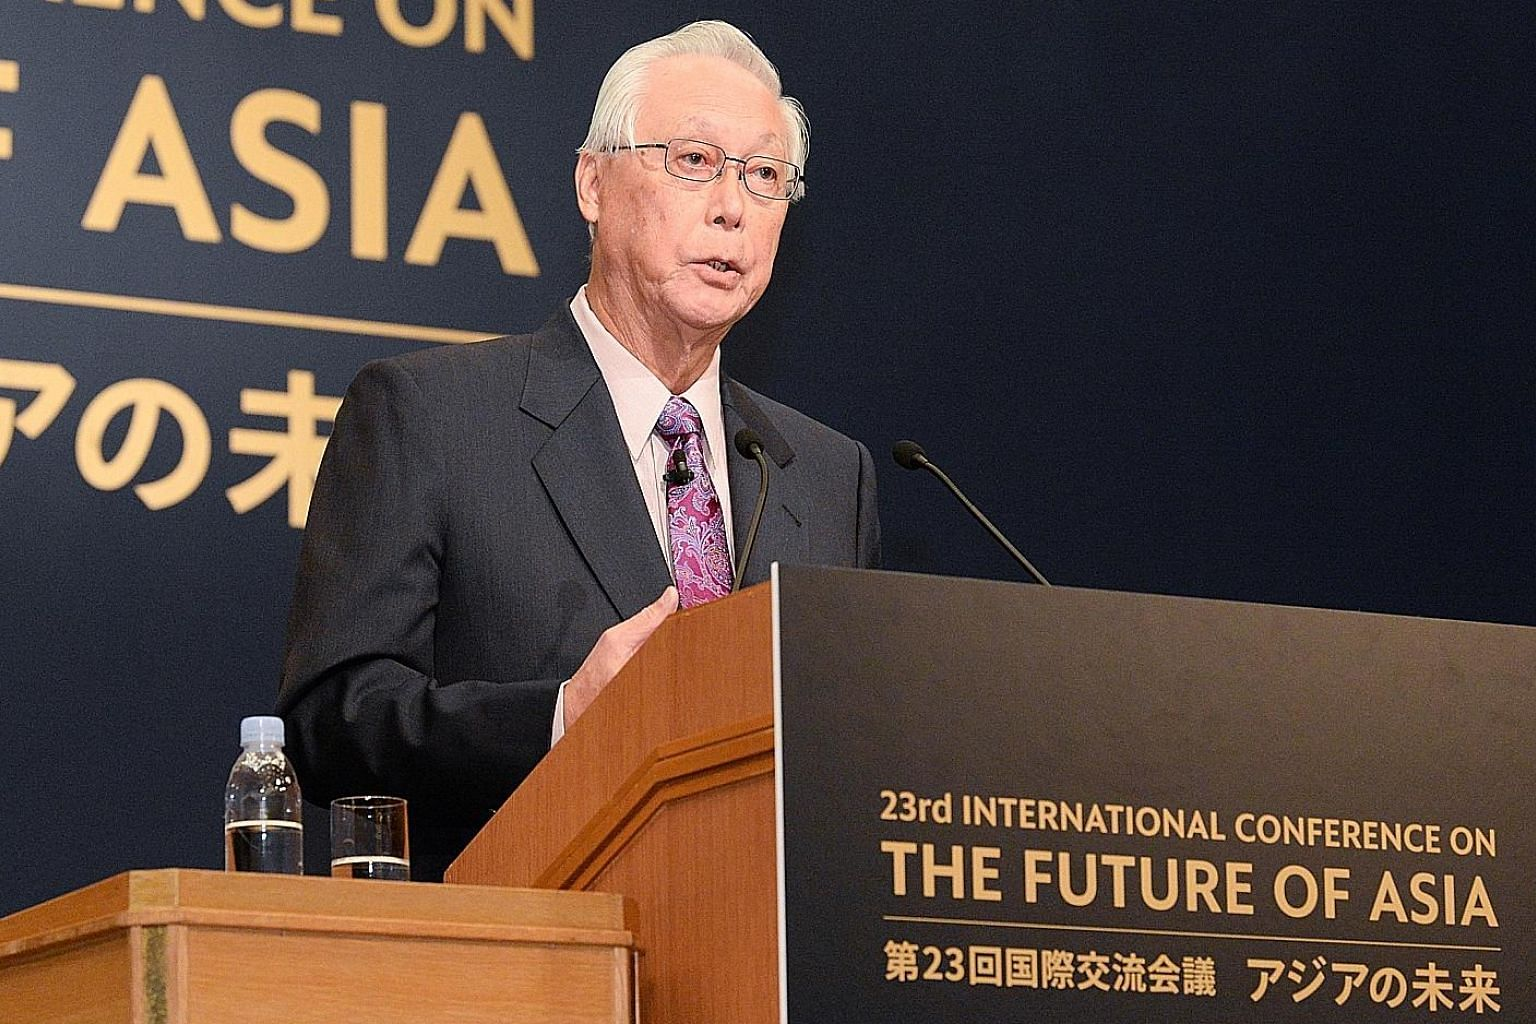 ESM Goh Chok Tong urged Japan and China to work together, at the Nikkei Future of Asia conference in Tokyo yesterday.